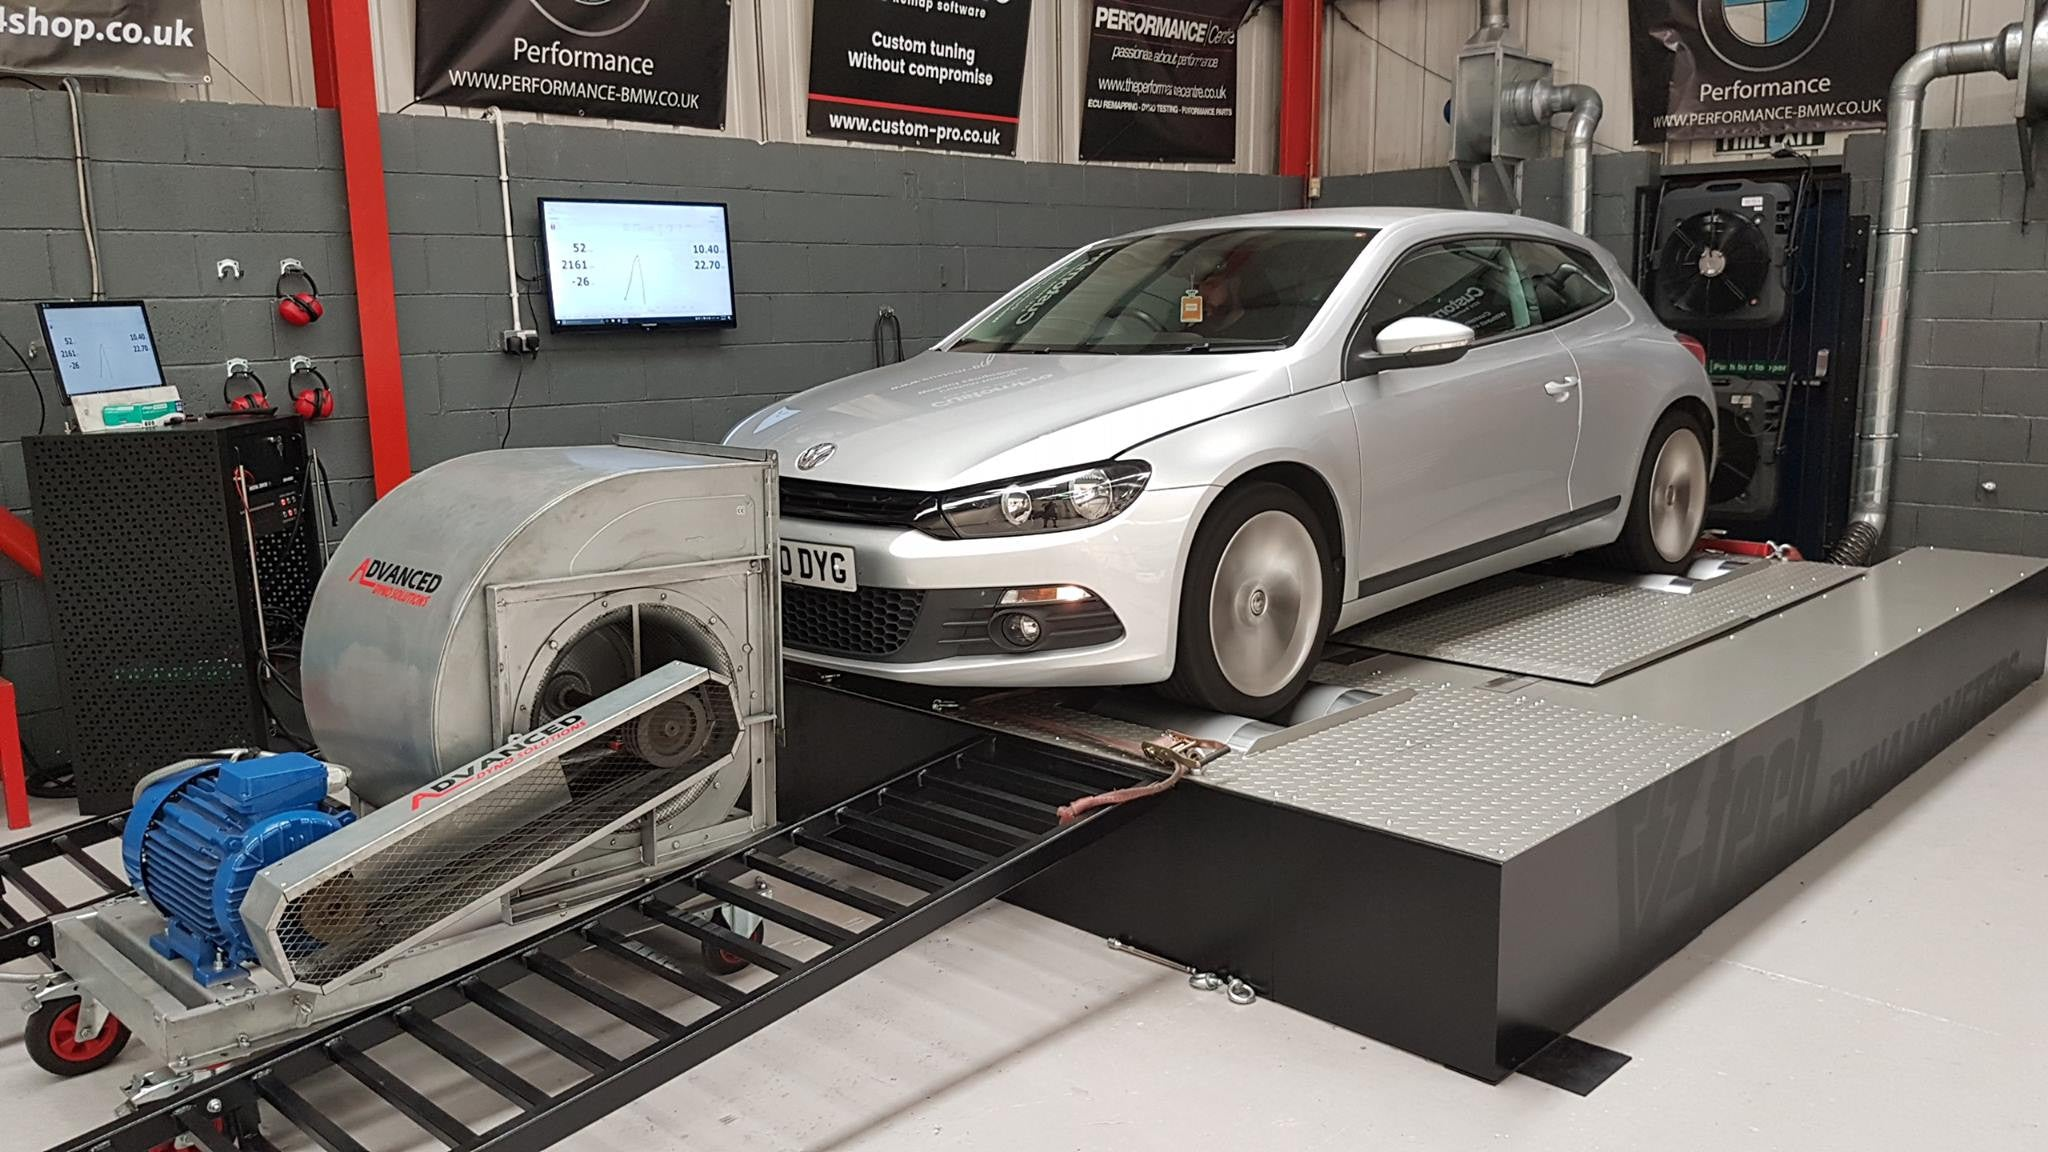 Volkswagen Scirocco - CustomPro remap